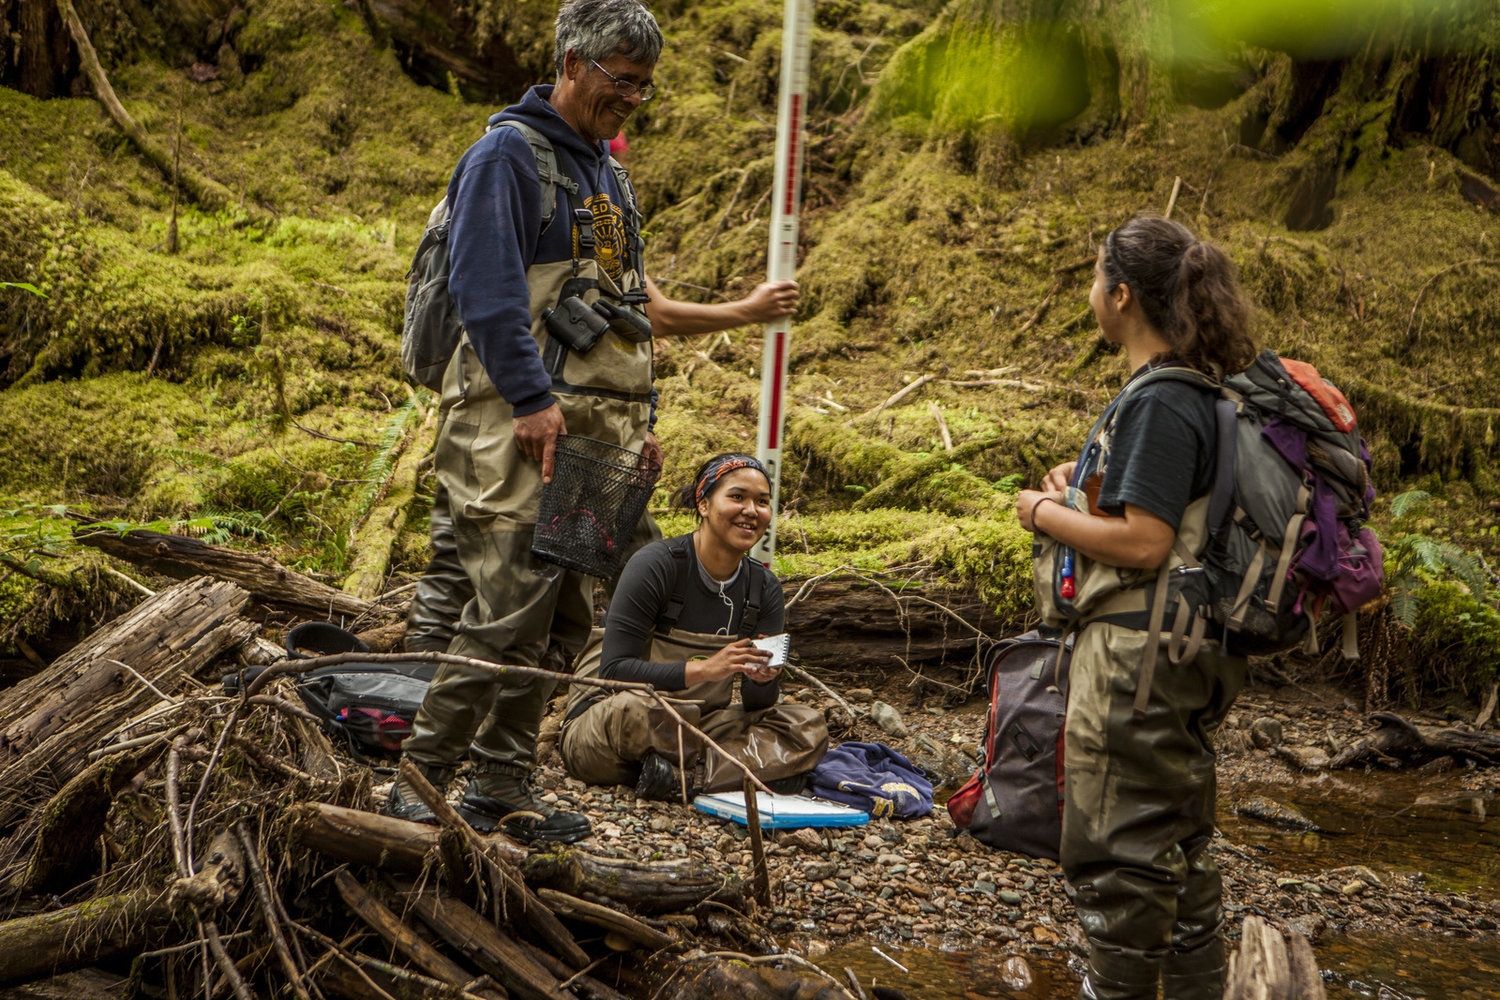 Members of the Haida tribe perform fish surveys on streams at Keat's Inlet on Prince of Wales Island. Streams that provide proof as good salmon habitat can be protected at the highest level by the state of Alaska.